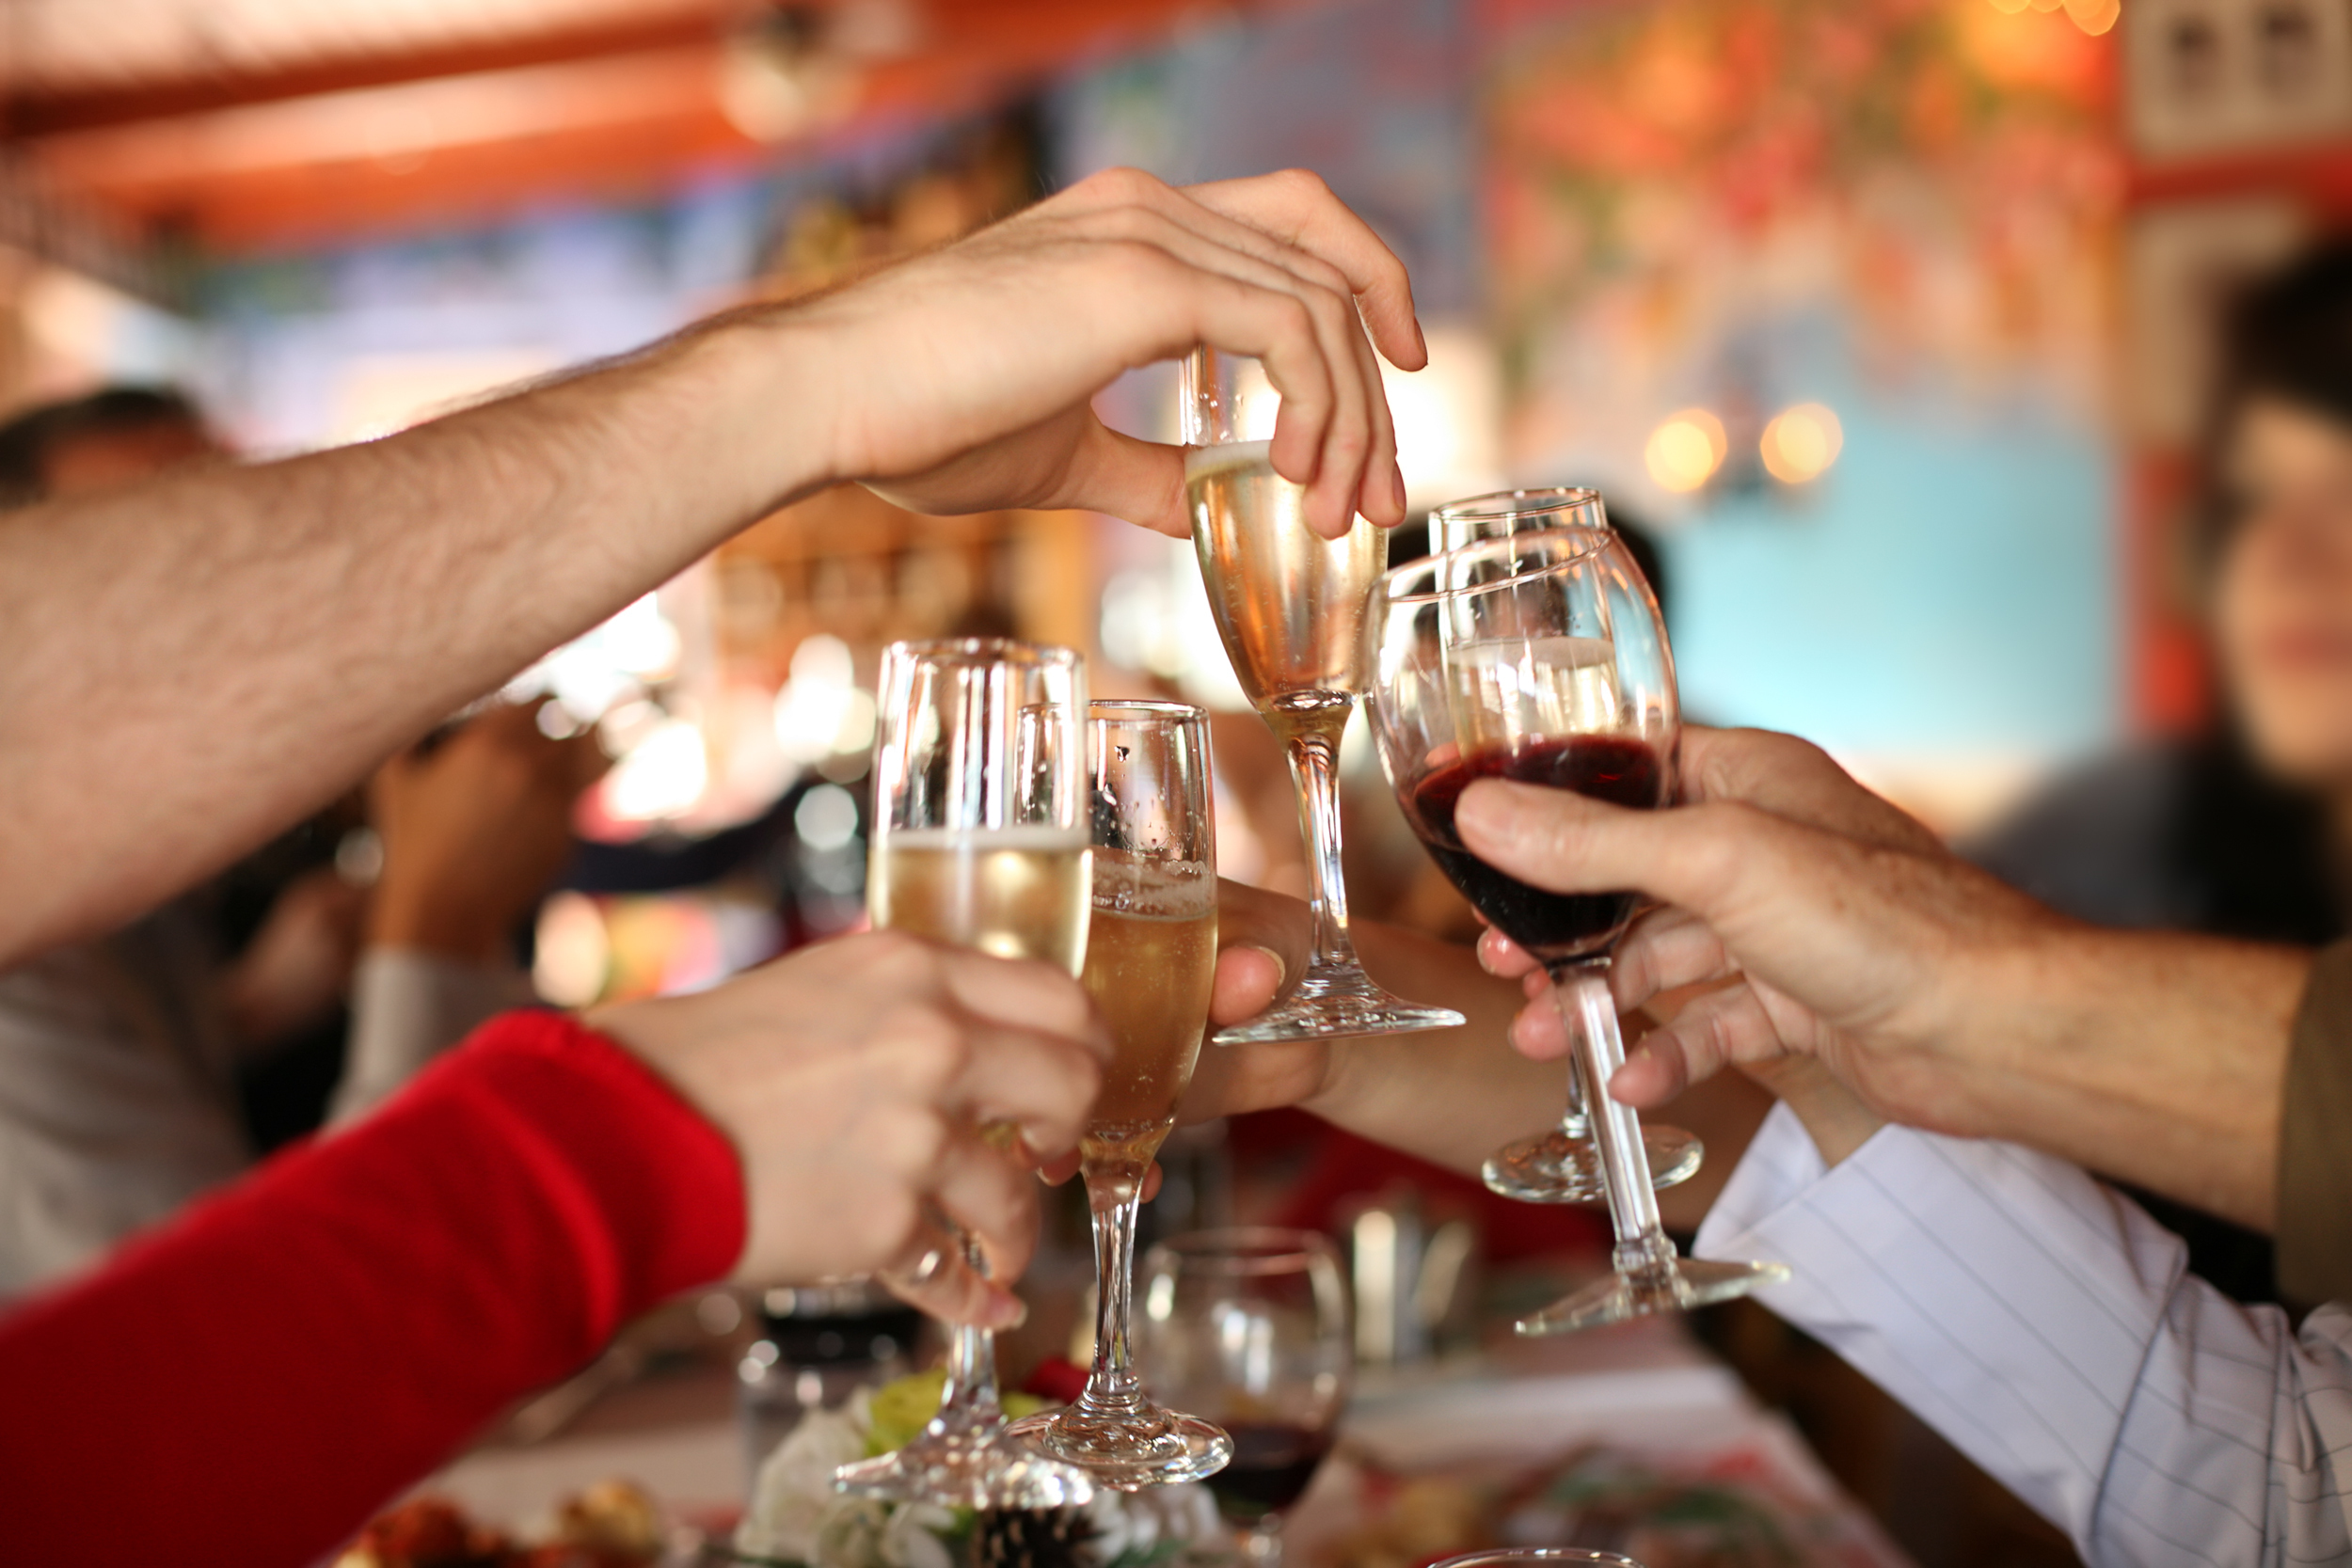 Italiani e alcol: le cifre dell'Alcohol Prevention Day